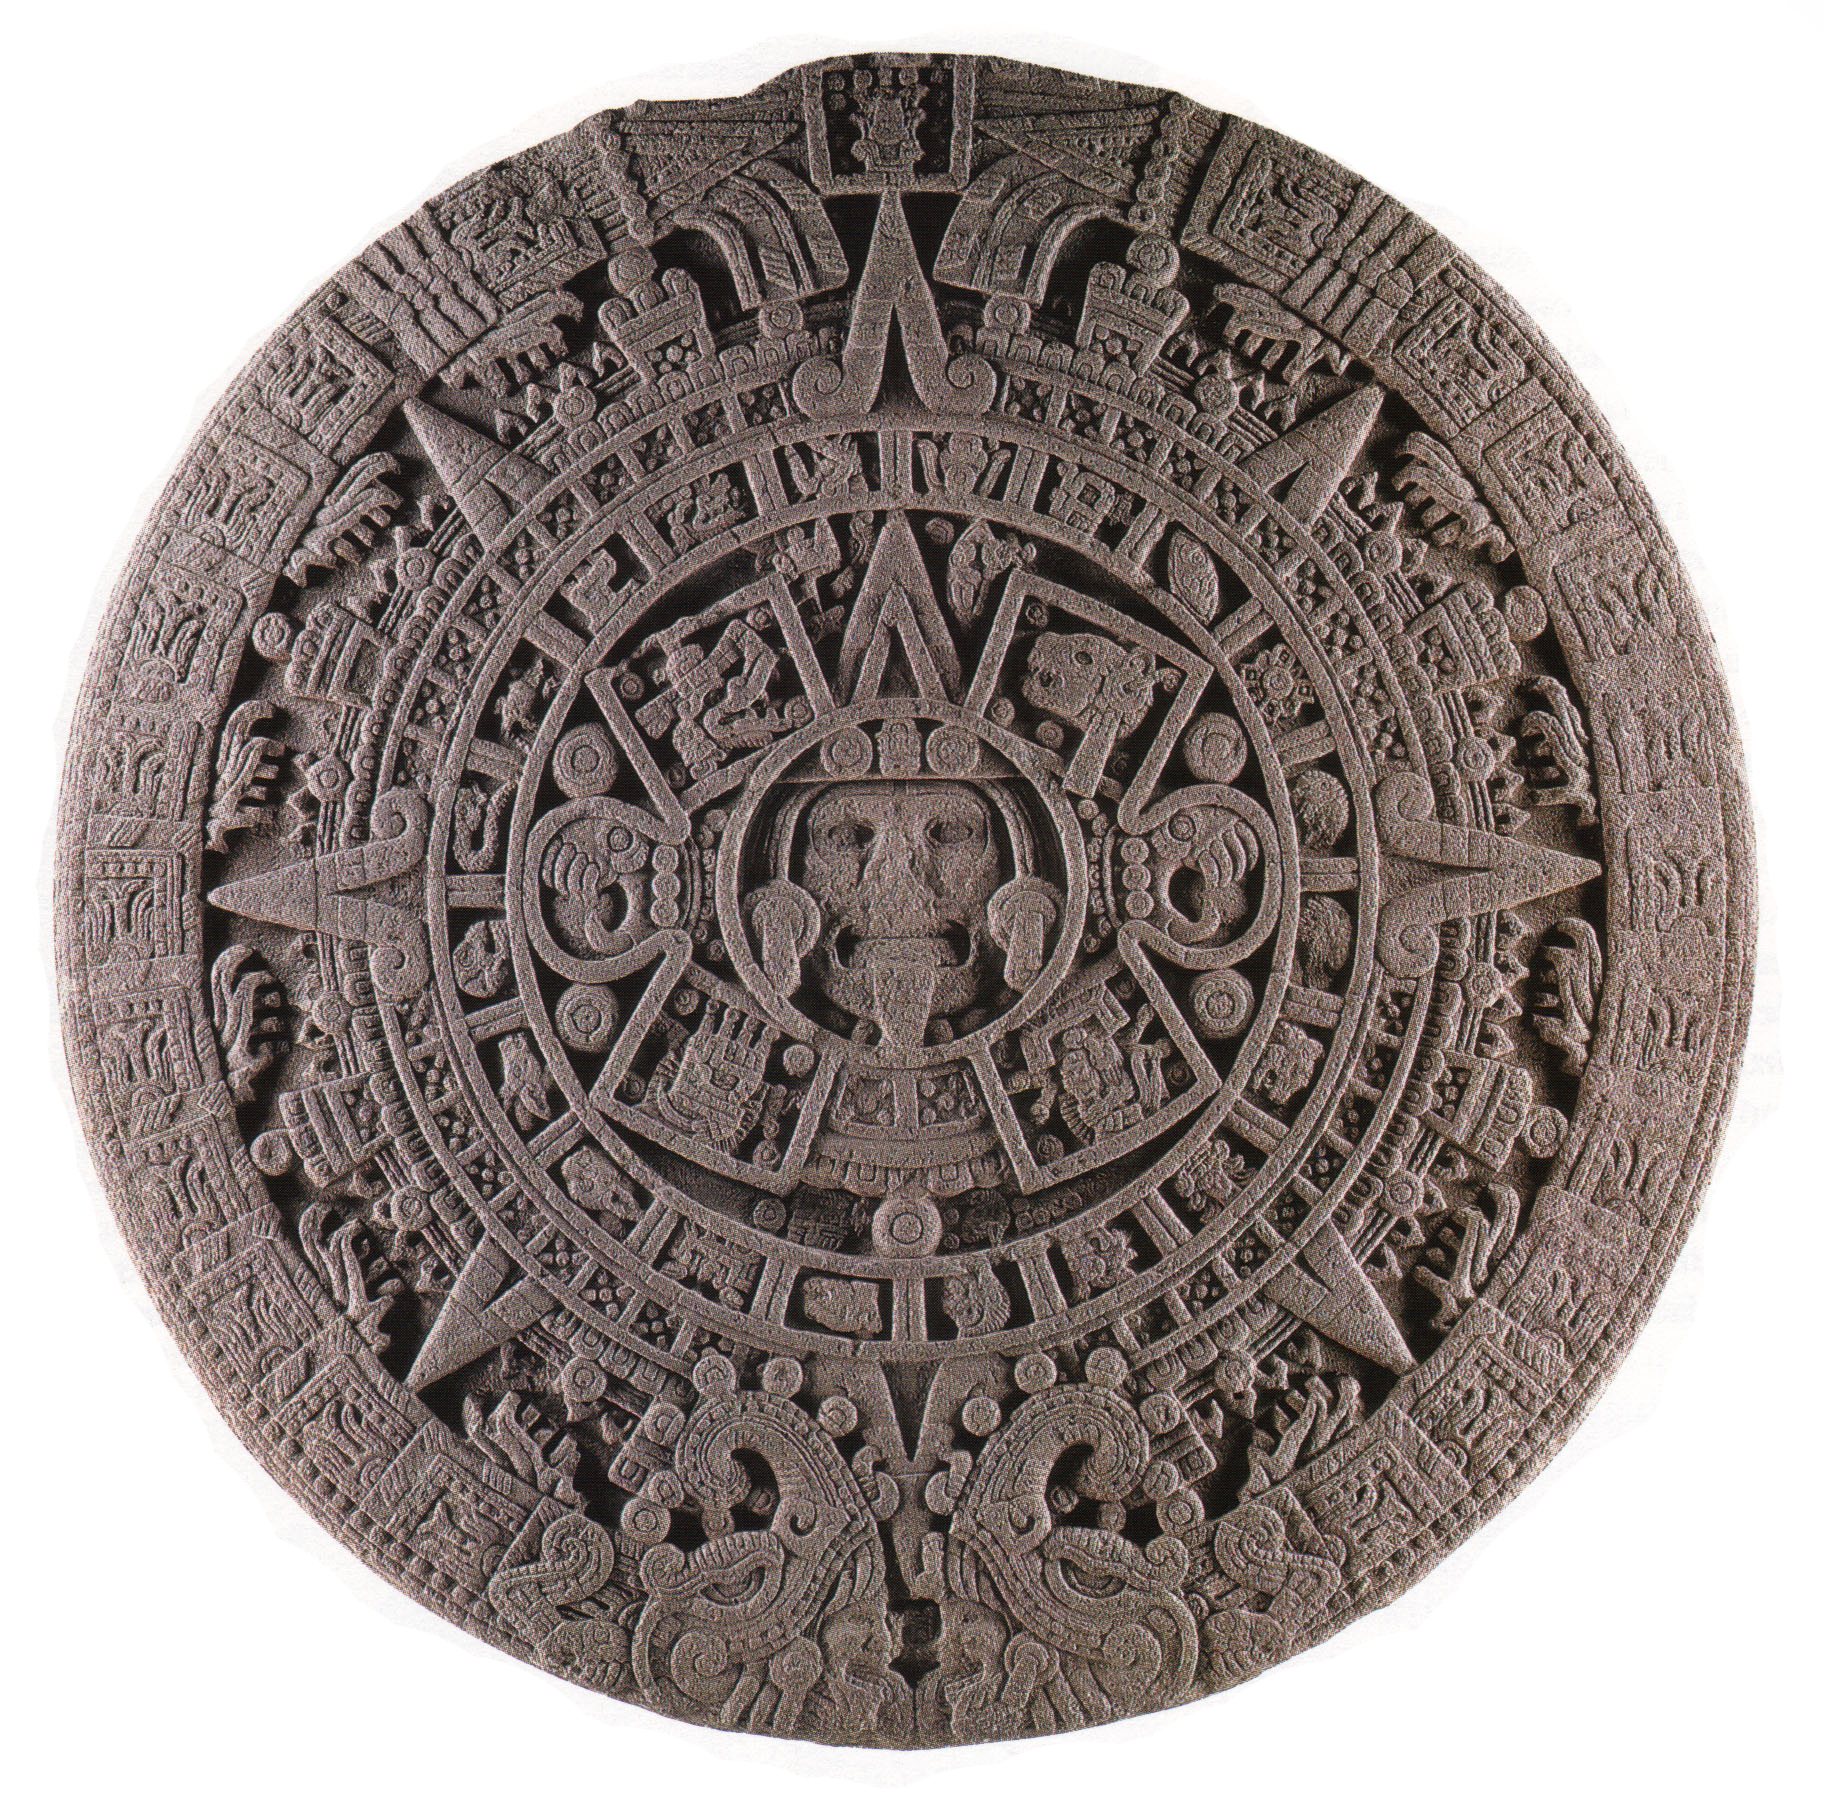 The Face Of The Calendar Stone: A New Interpretation – Maya With Corona Del Sol Calendar